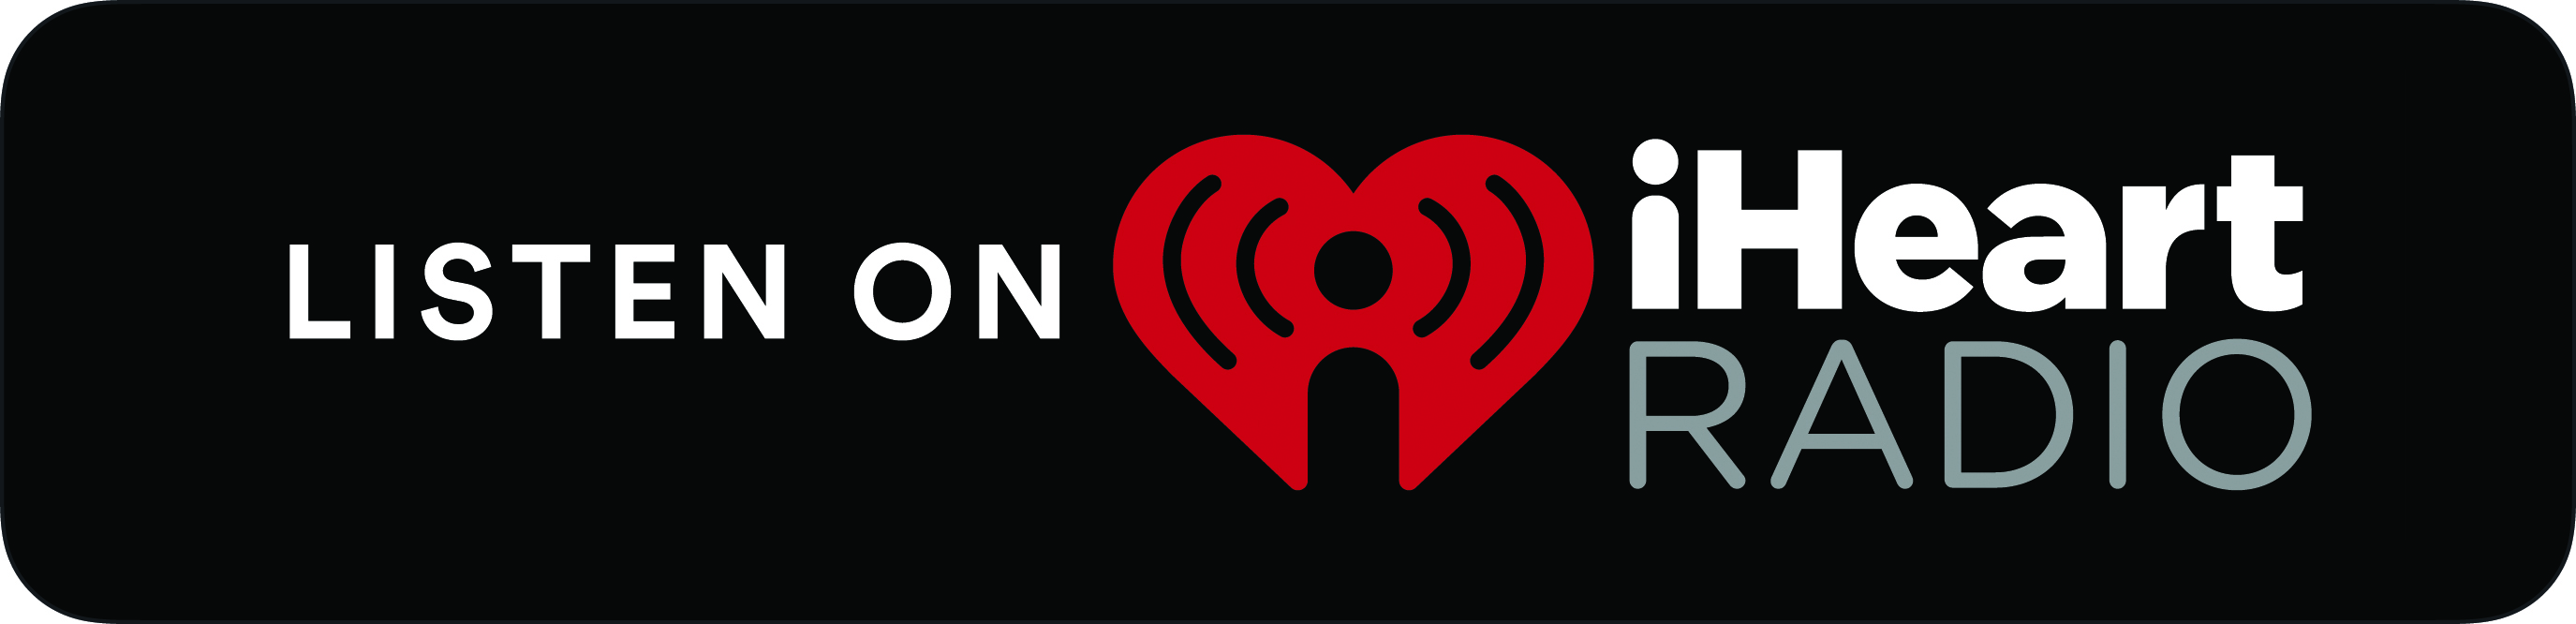 badge-iheartradio